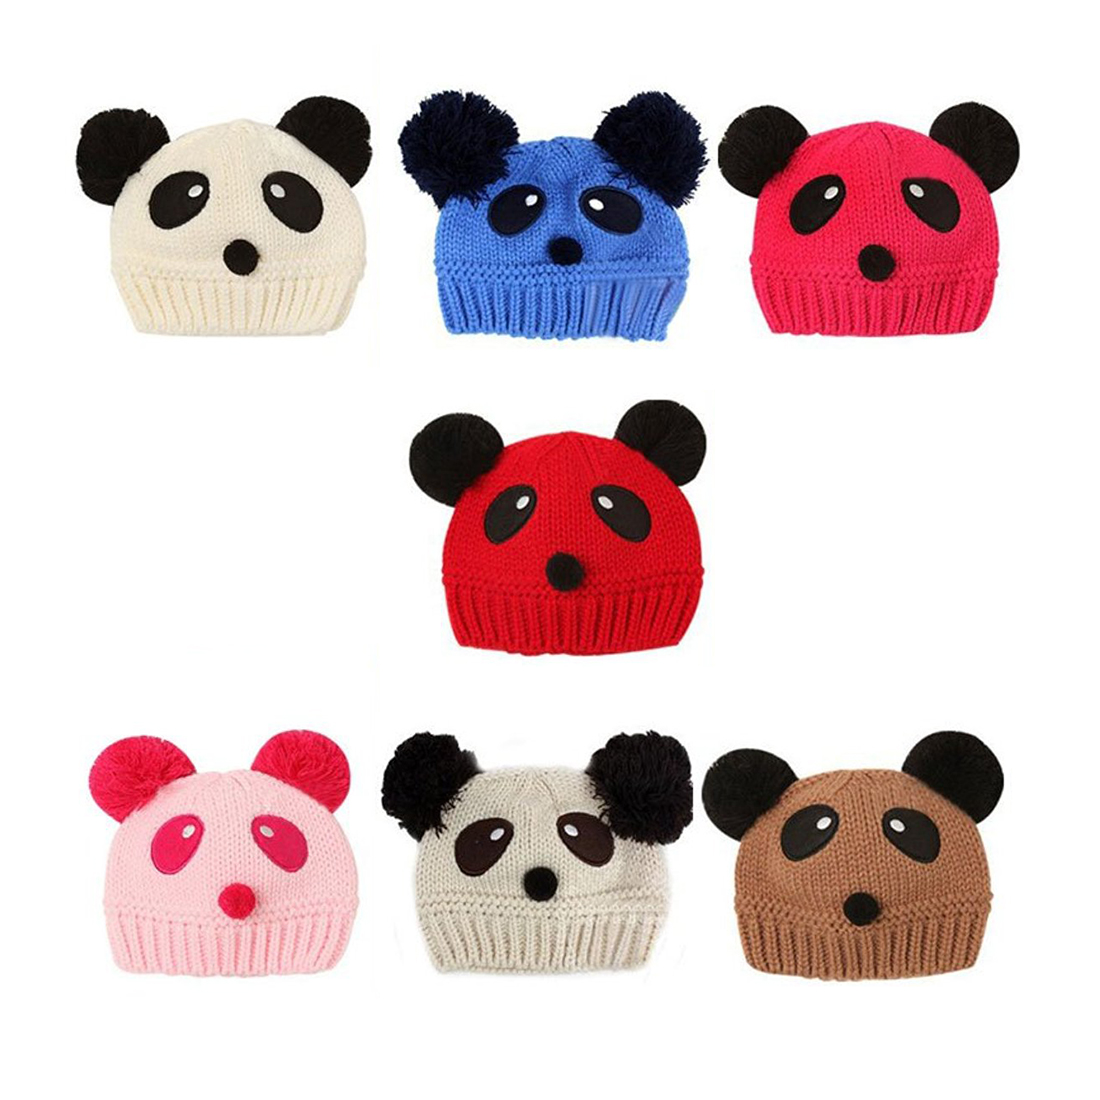 ABWE Lovely Animal Panda Baby Knitted Hats Kids Winter Keep Warm Crochet Beanie Caps